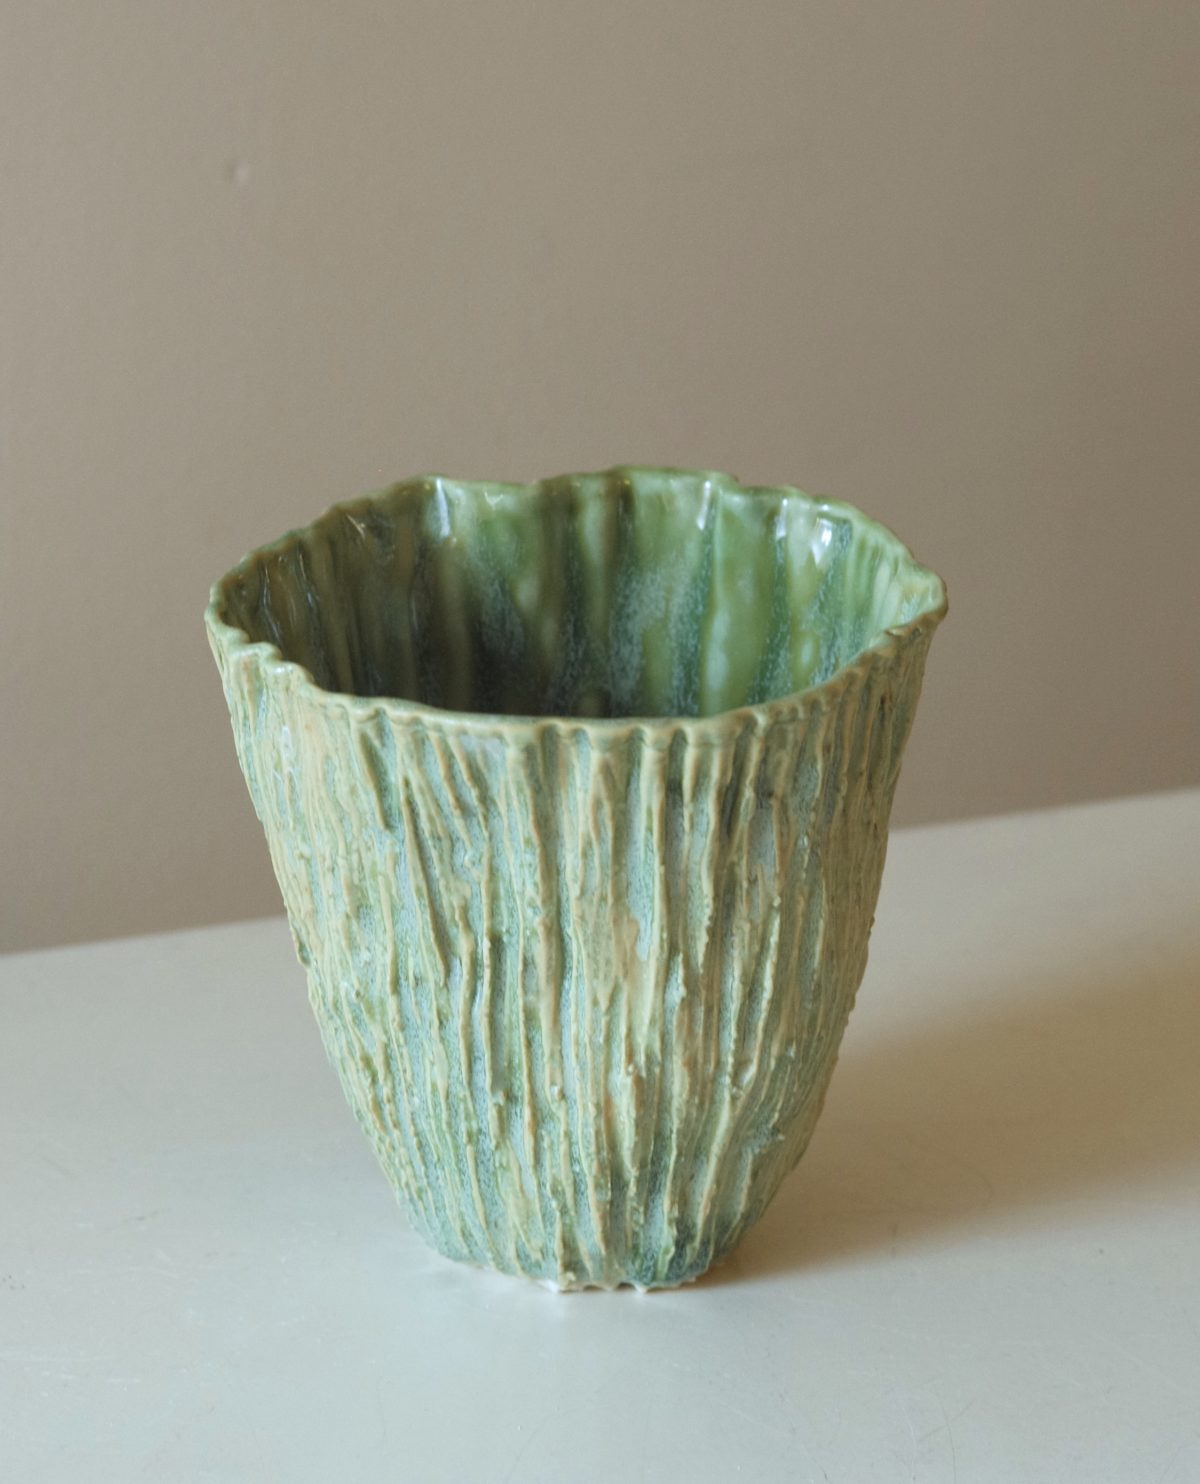 Rocks Tall Cup in Green Lana Kova Porcelain